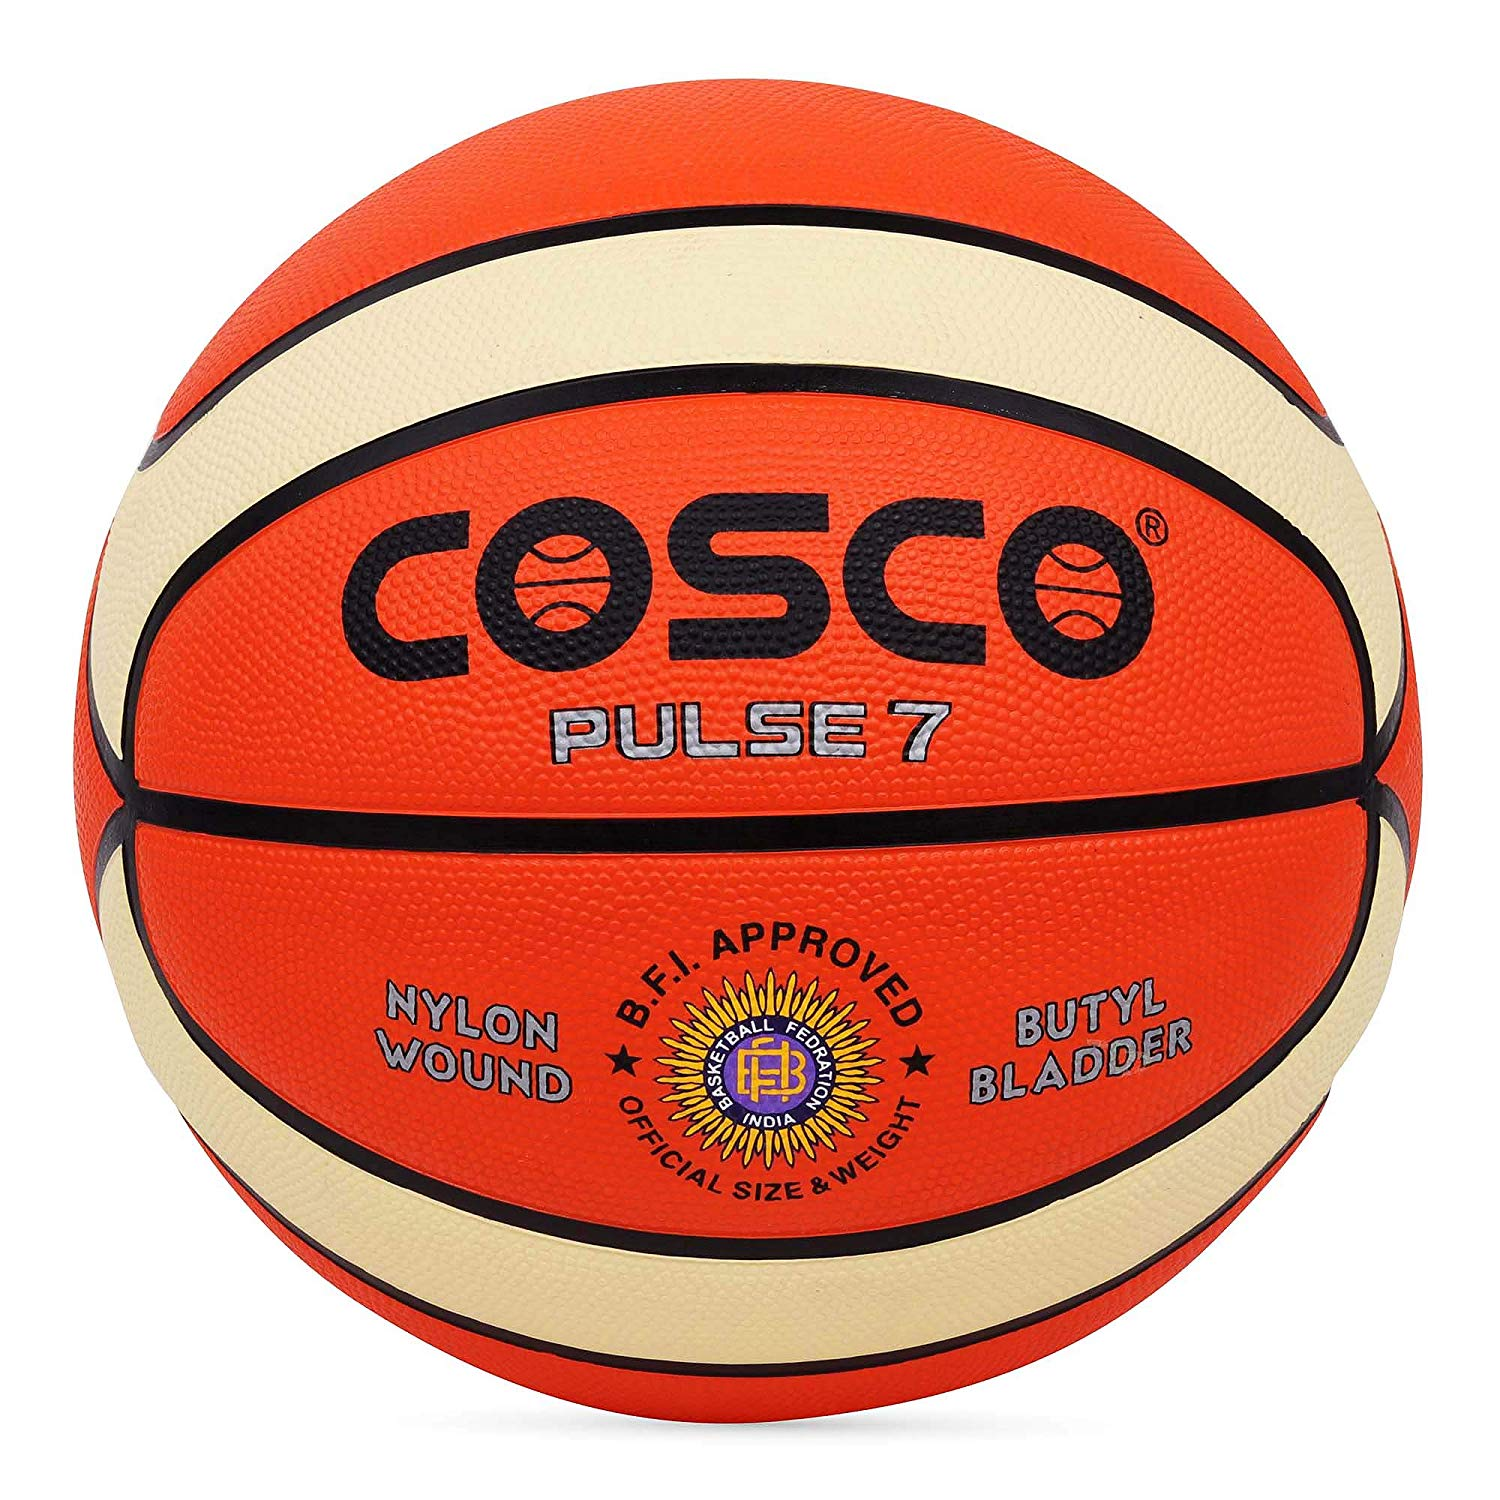 Cosco Pulse Basketball - Size 7